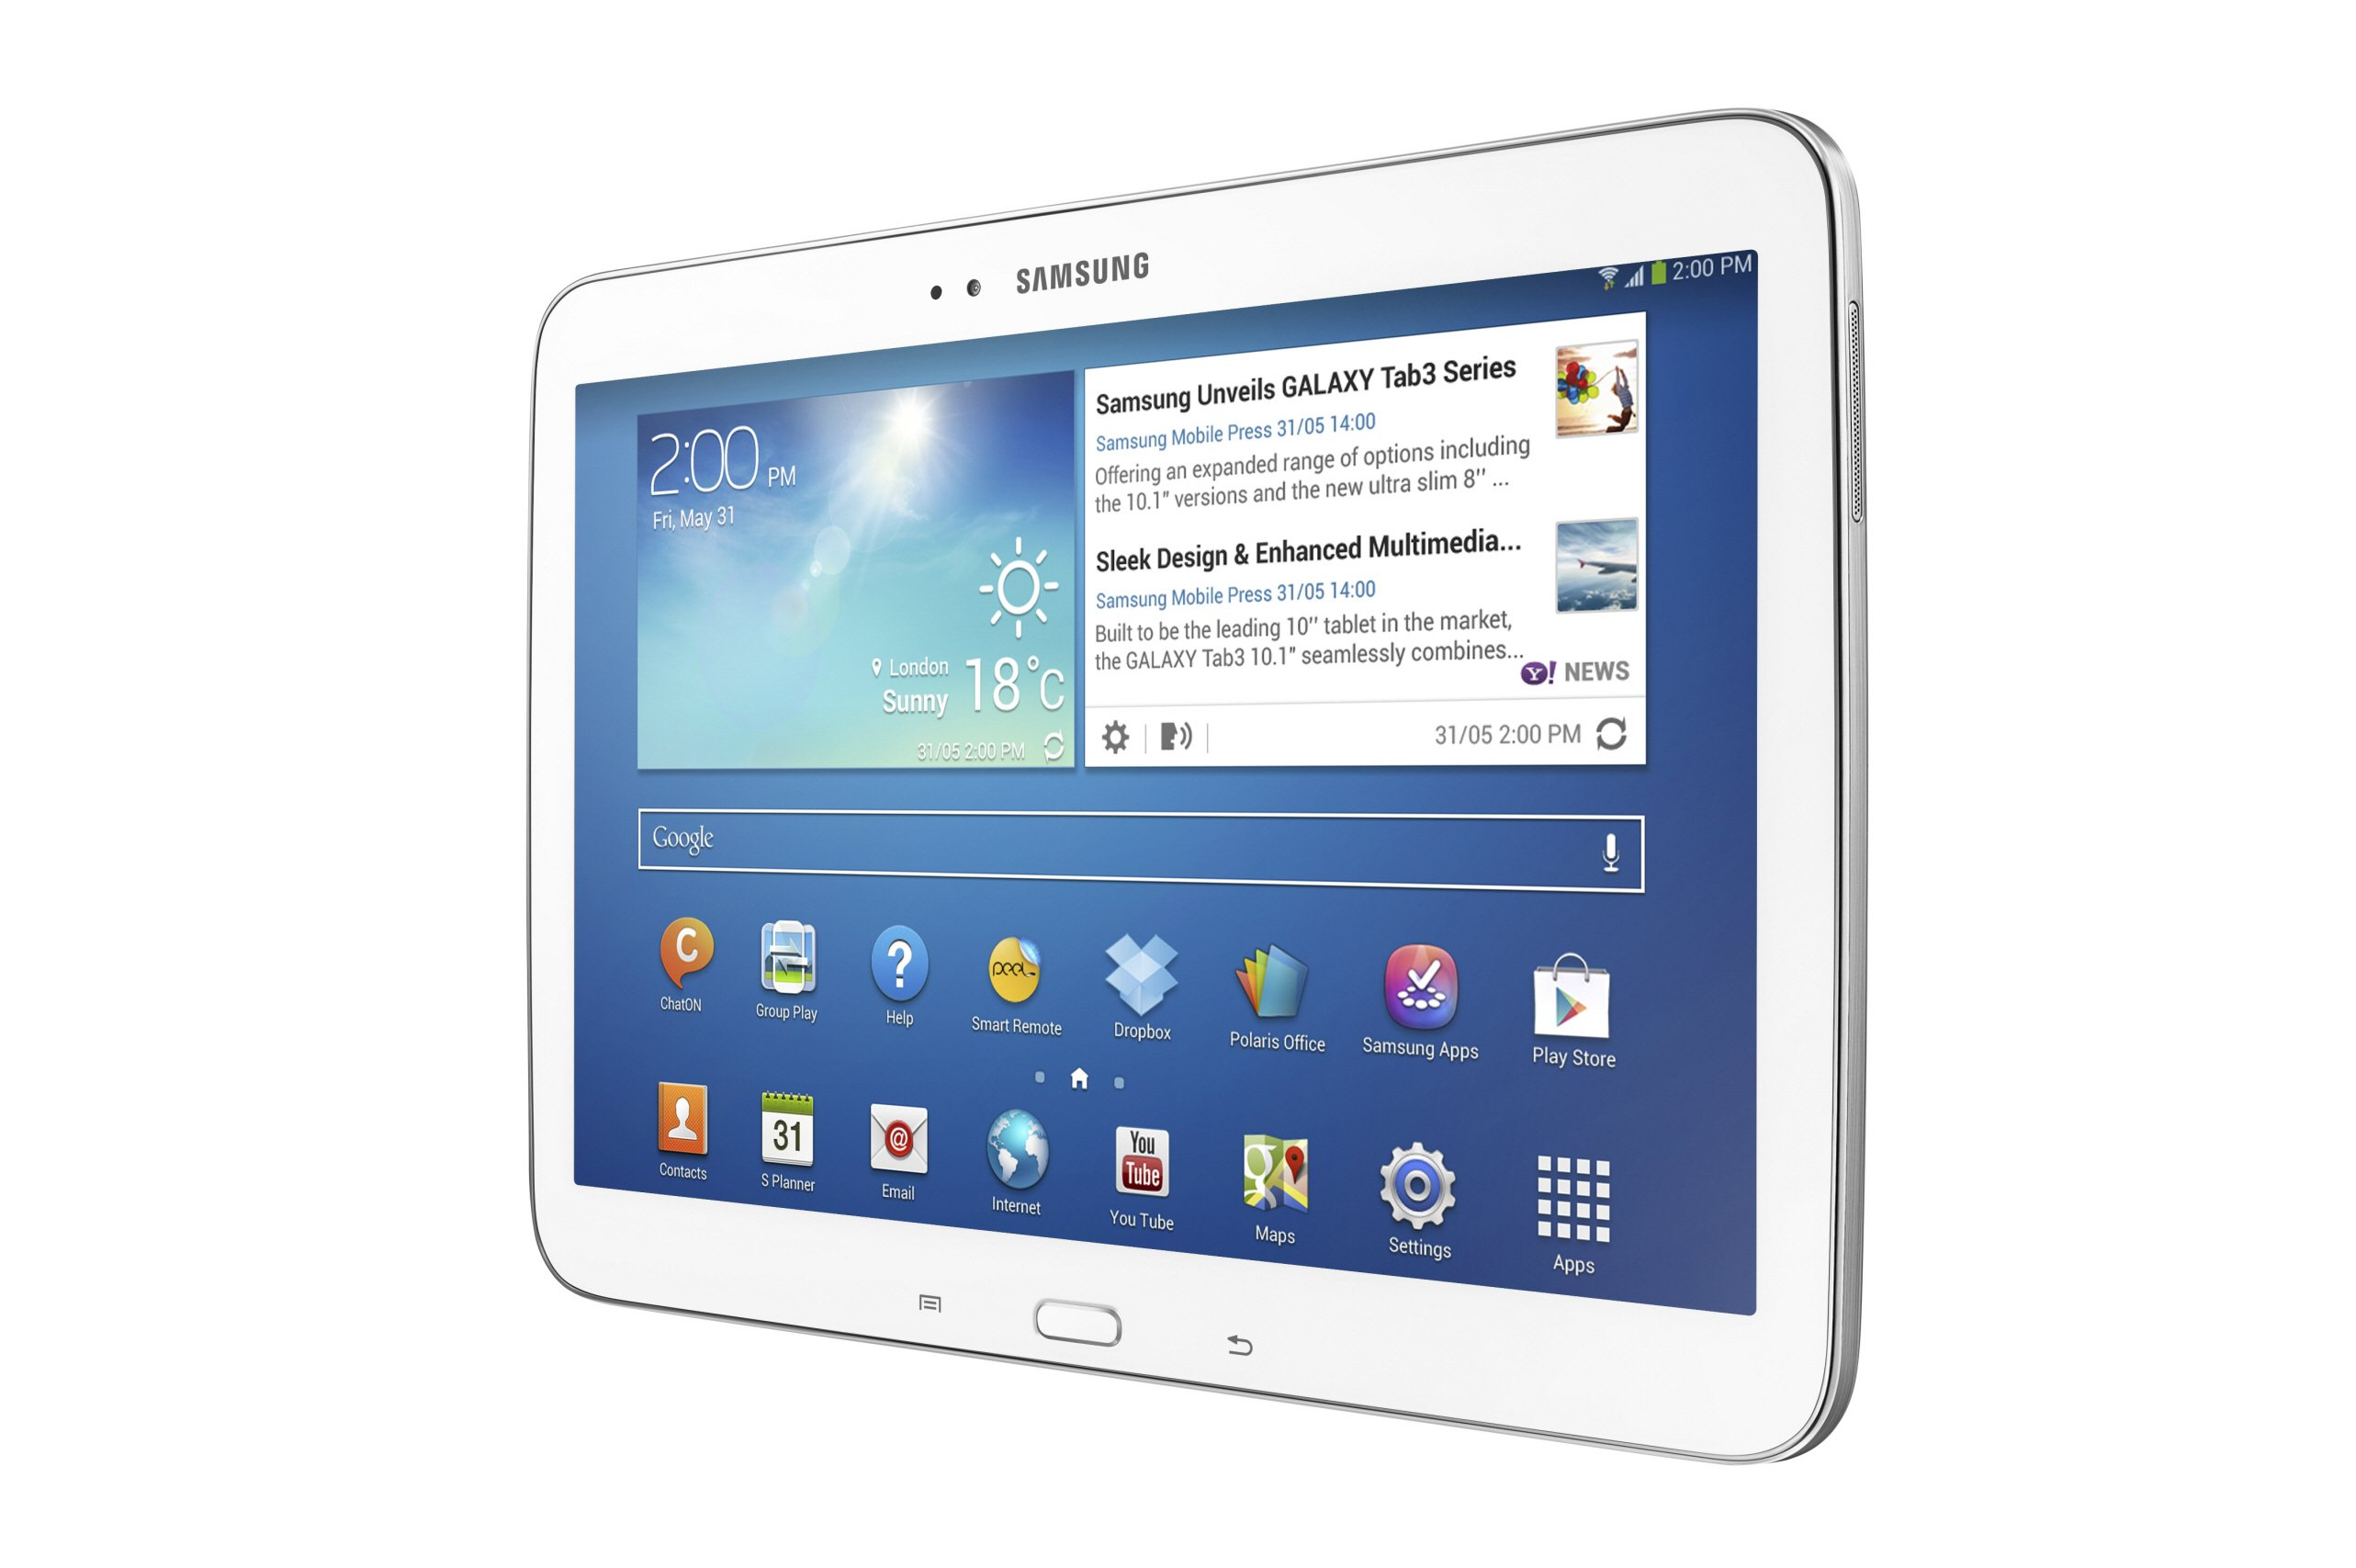 samsung introduces new galaxy tab 3 series sammobile